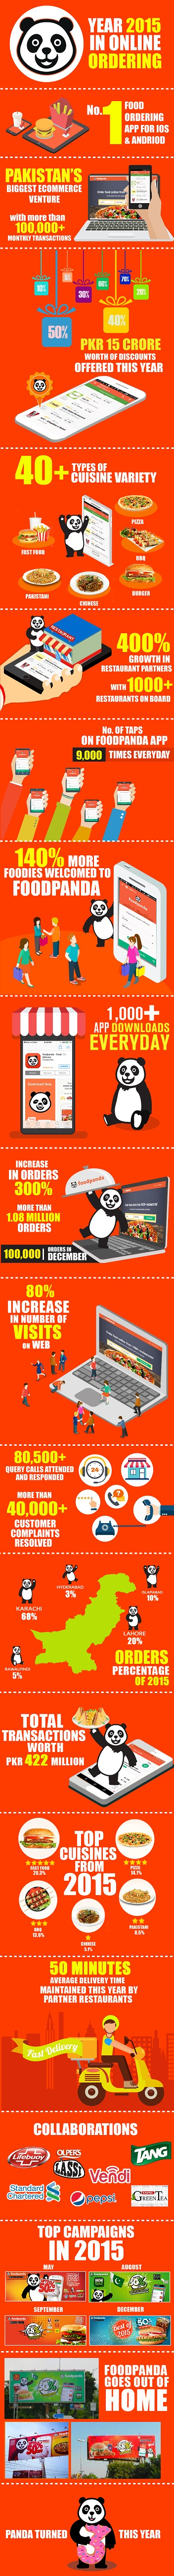 FoodPandaPk Infographic